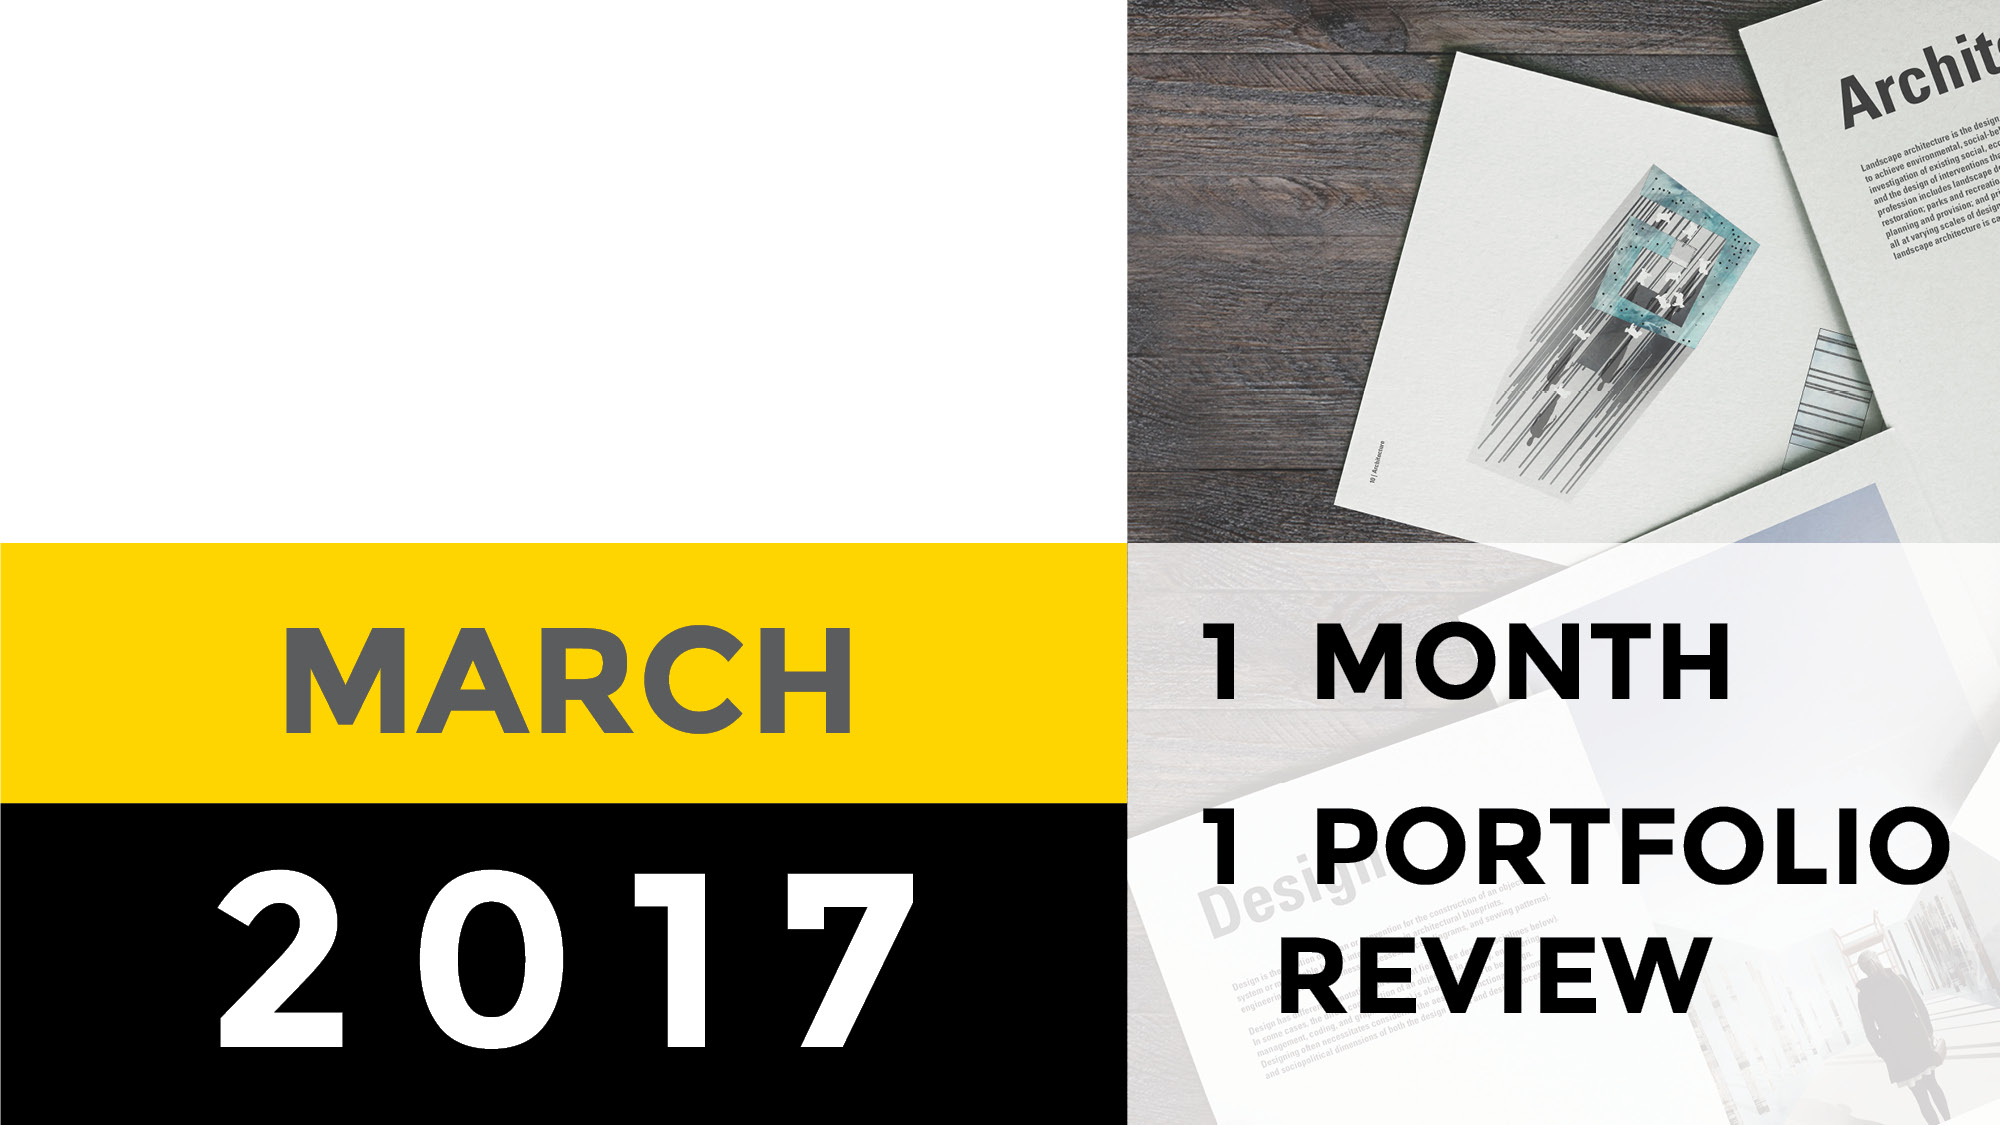 Portfolio Review | March 2017 | Asun Yuso